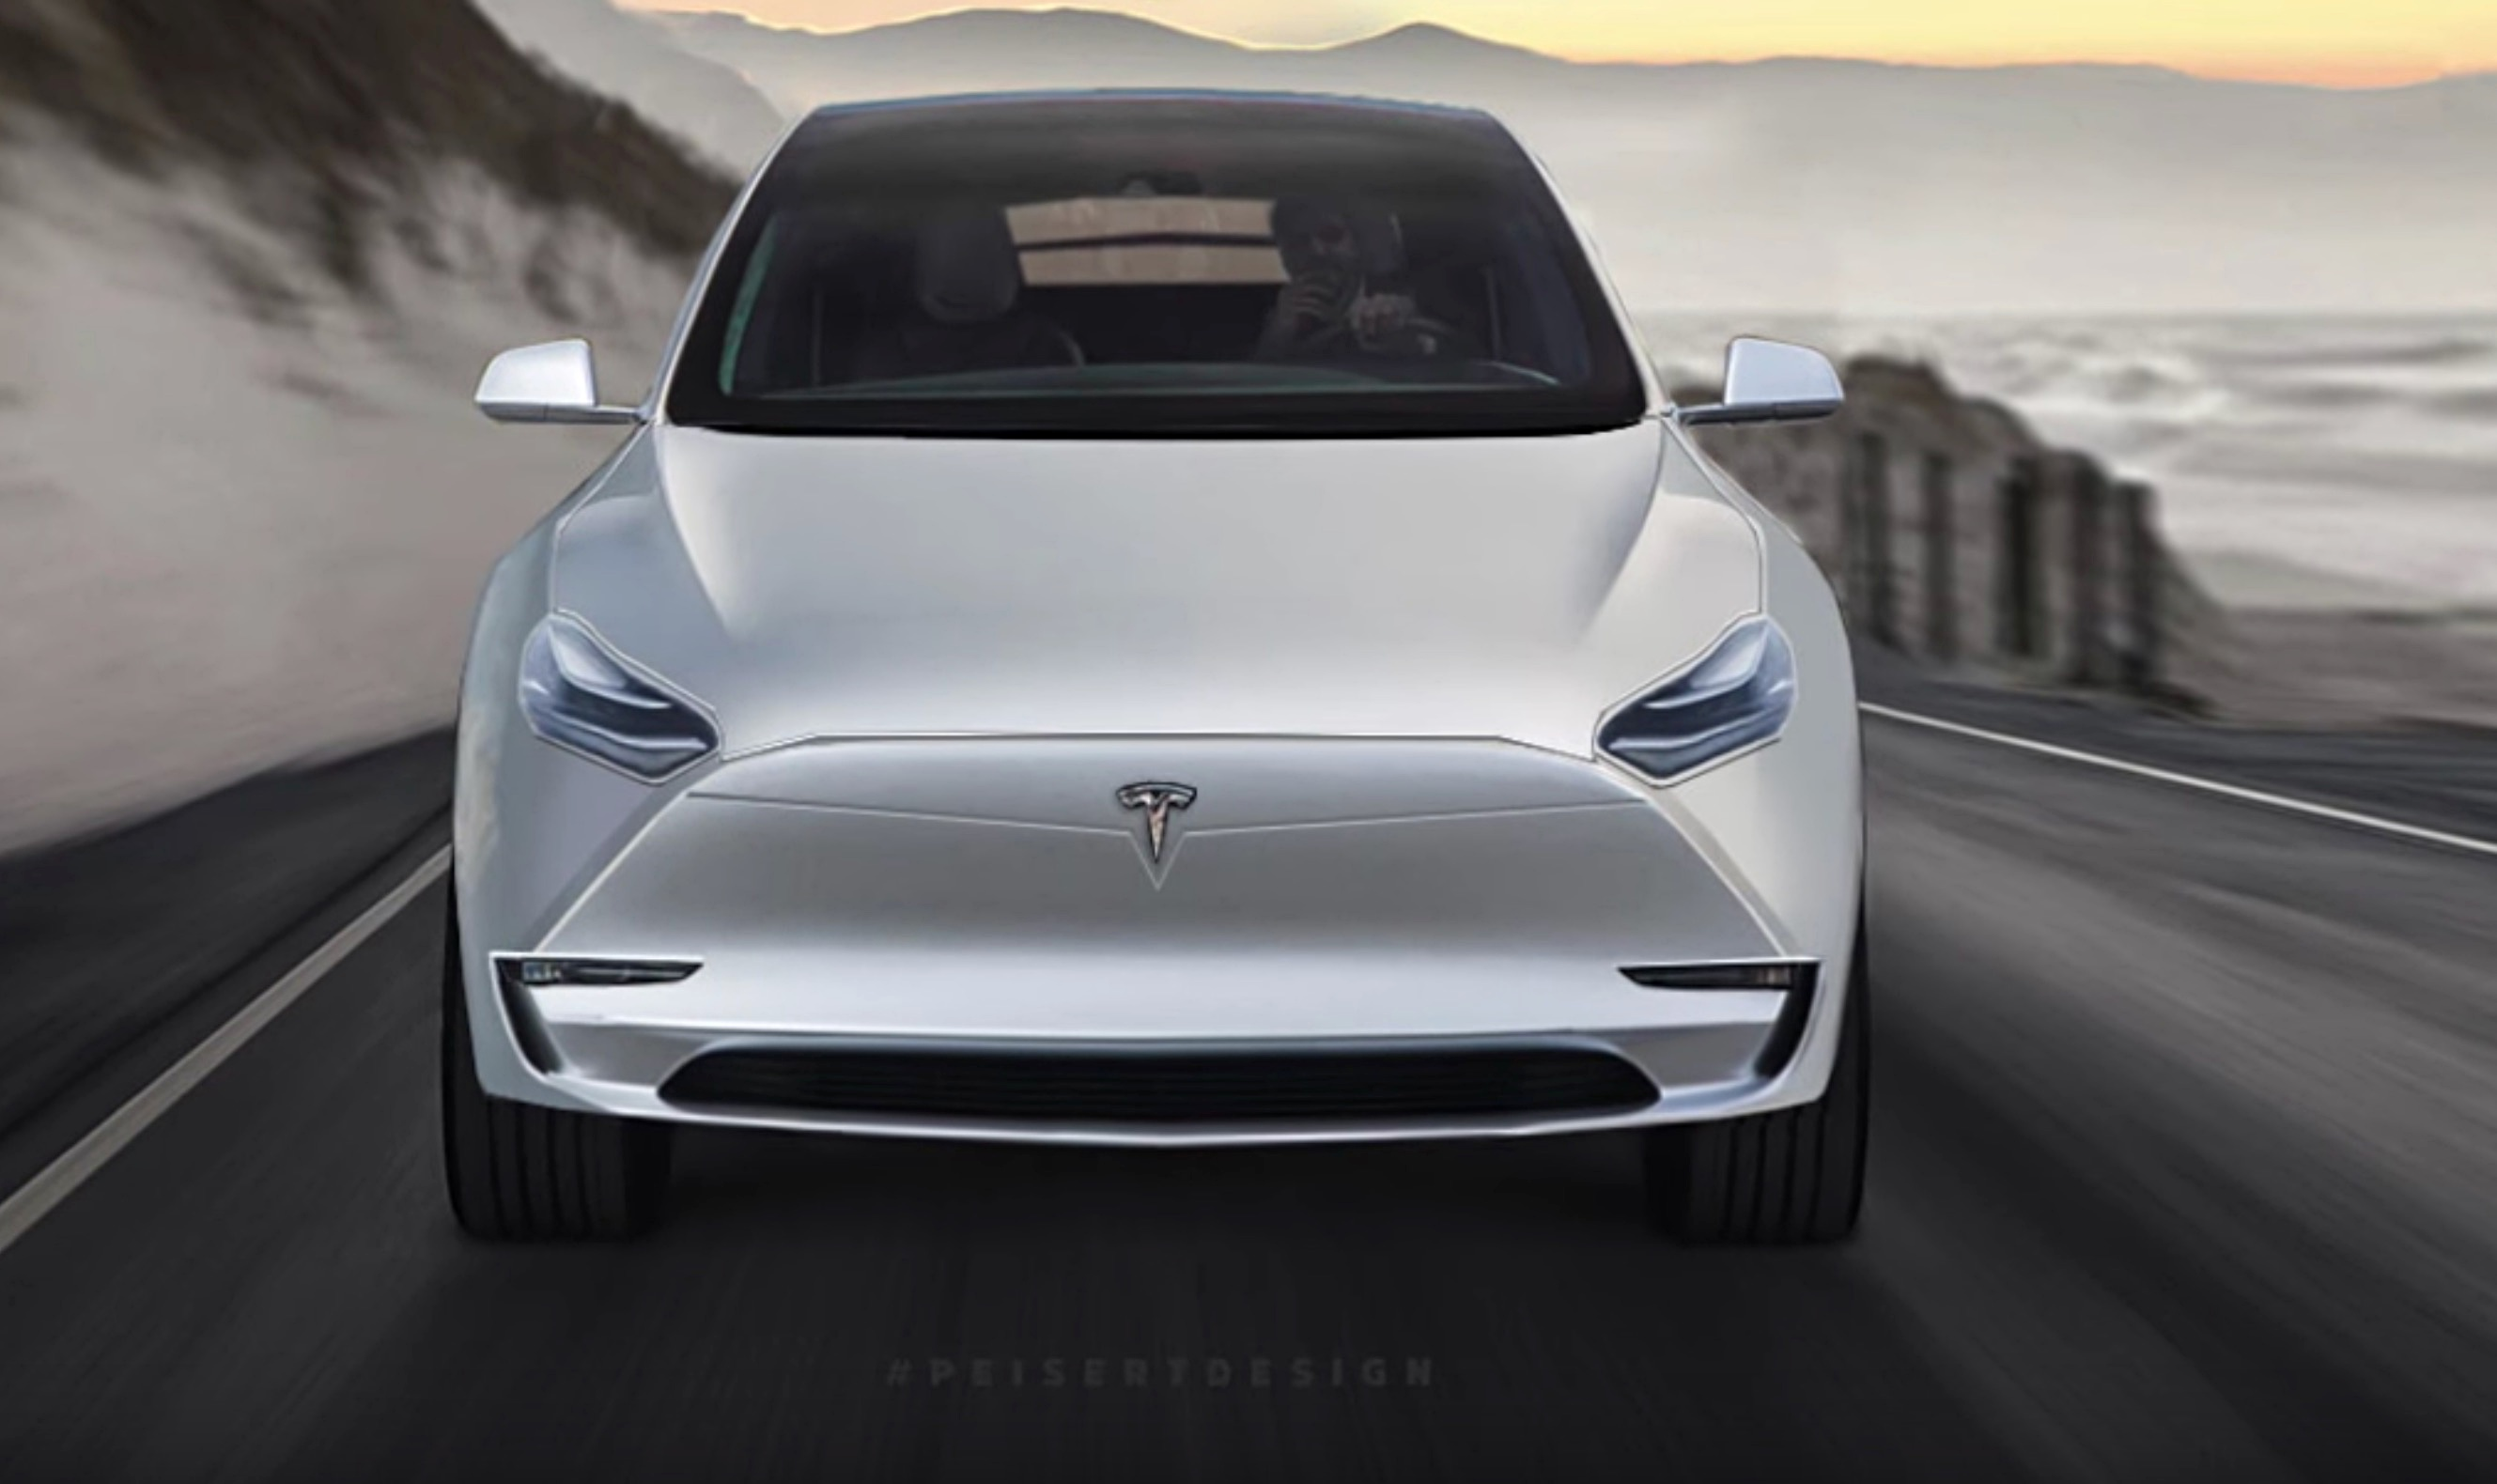 tesla-model-y-rendering-piesert-design